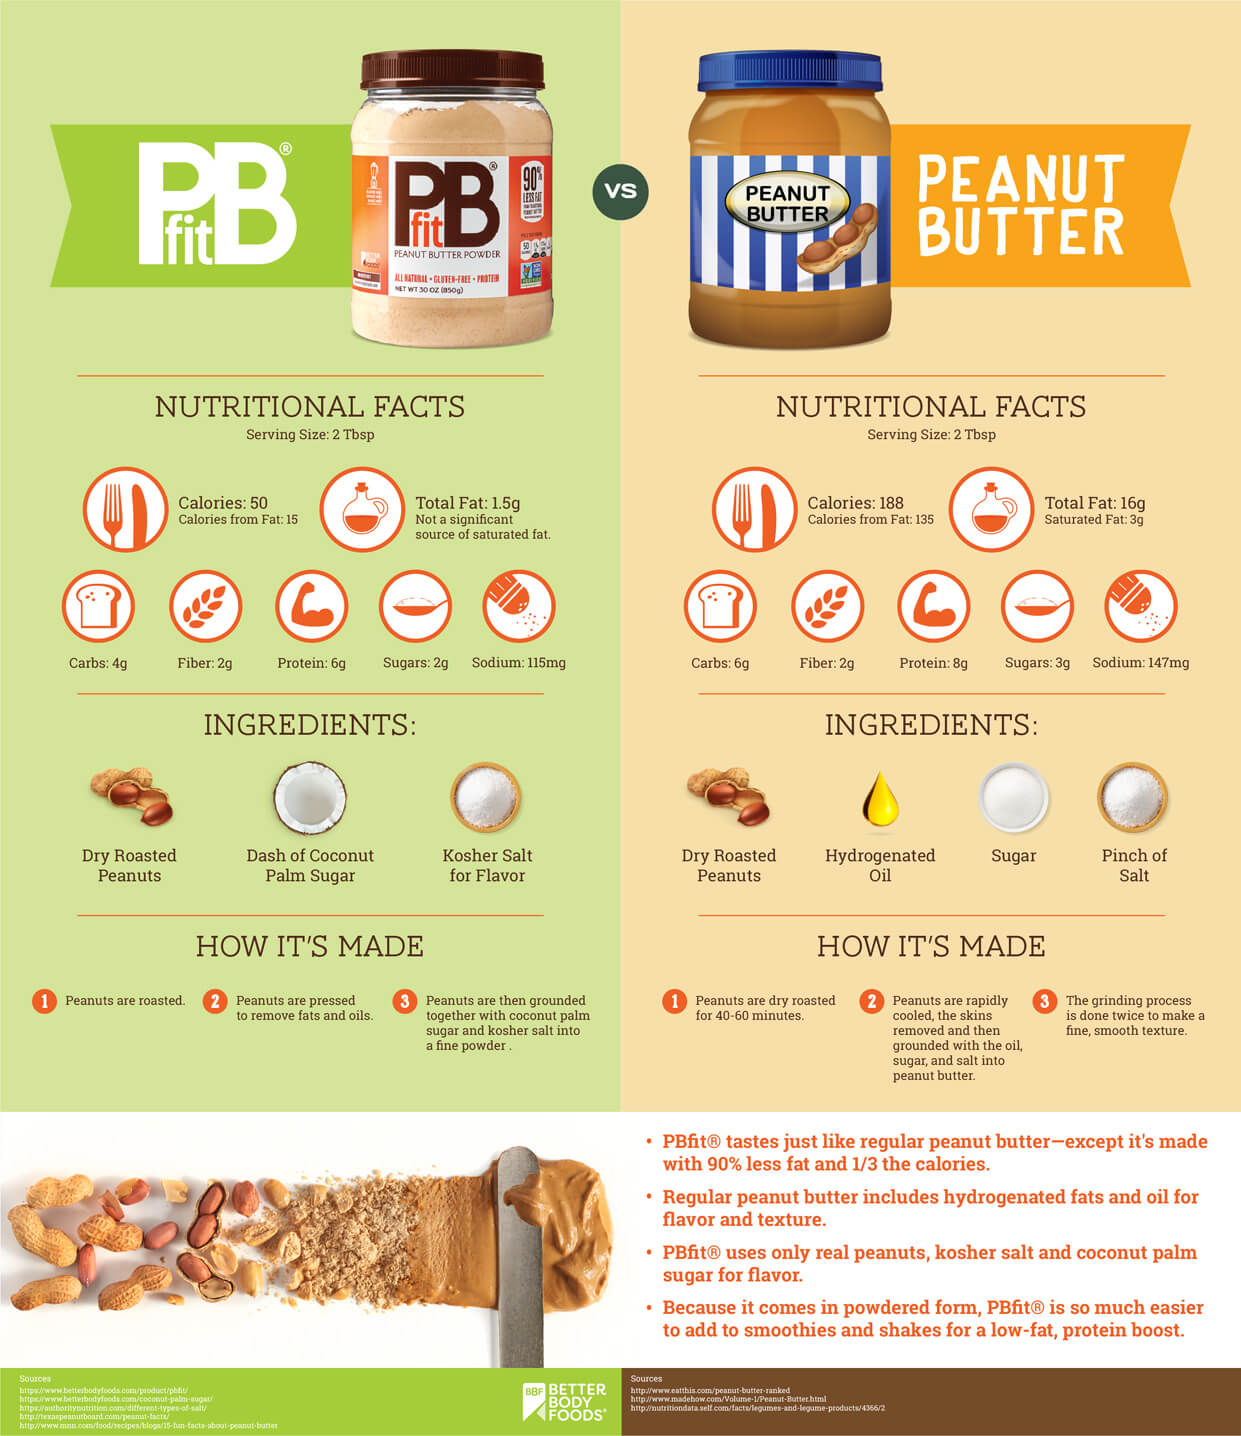 Peanut Butter vs Powdered Peanut Butter